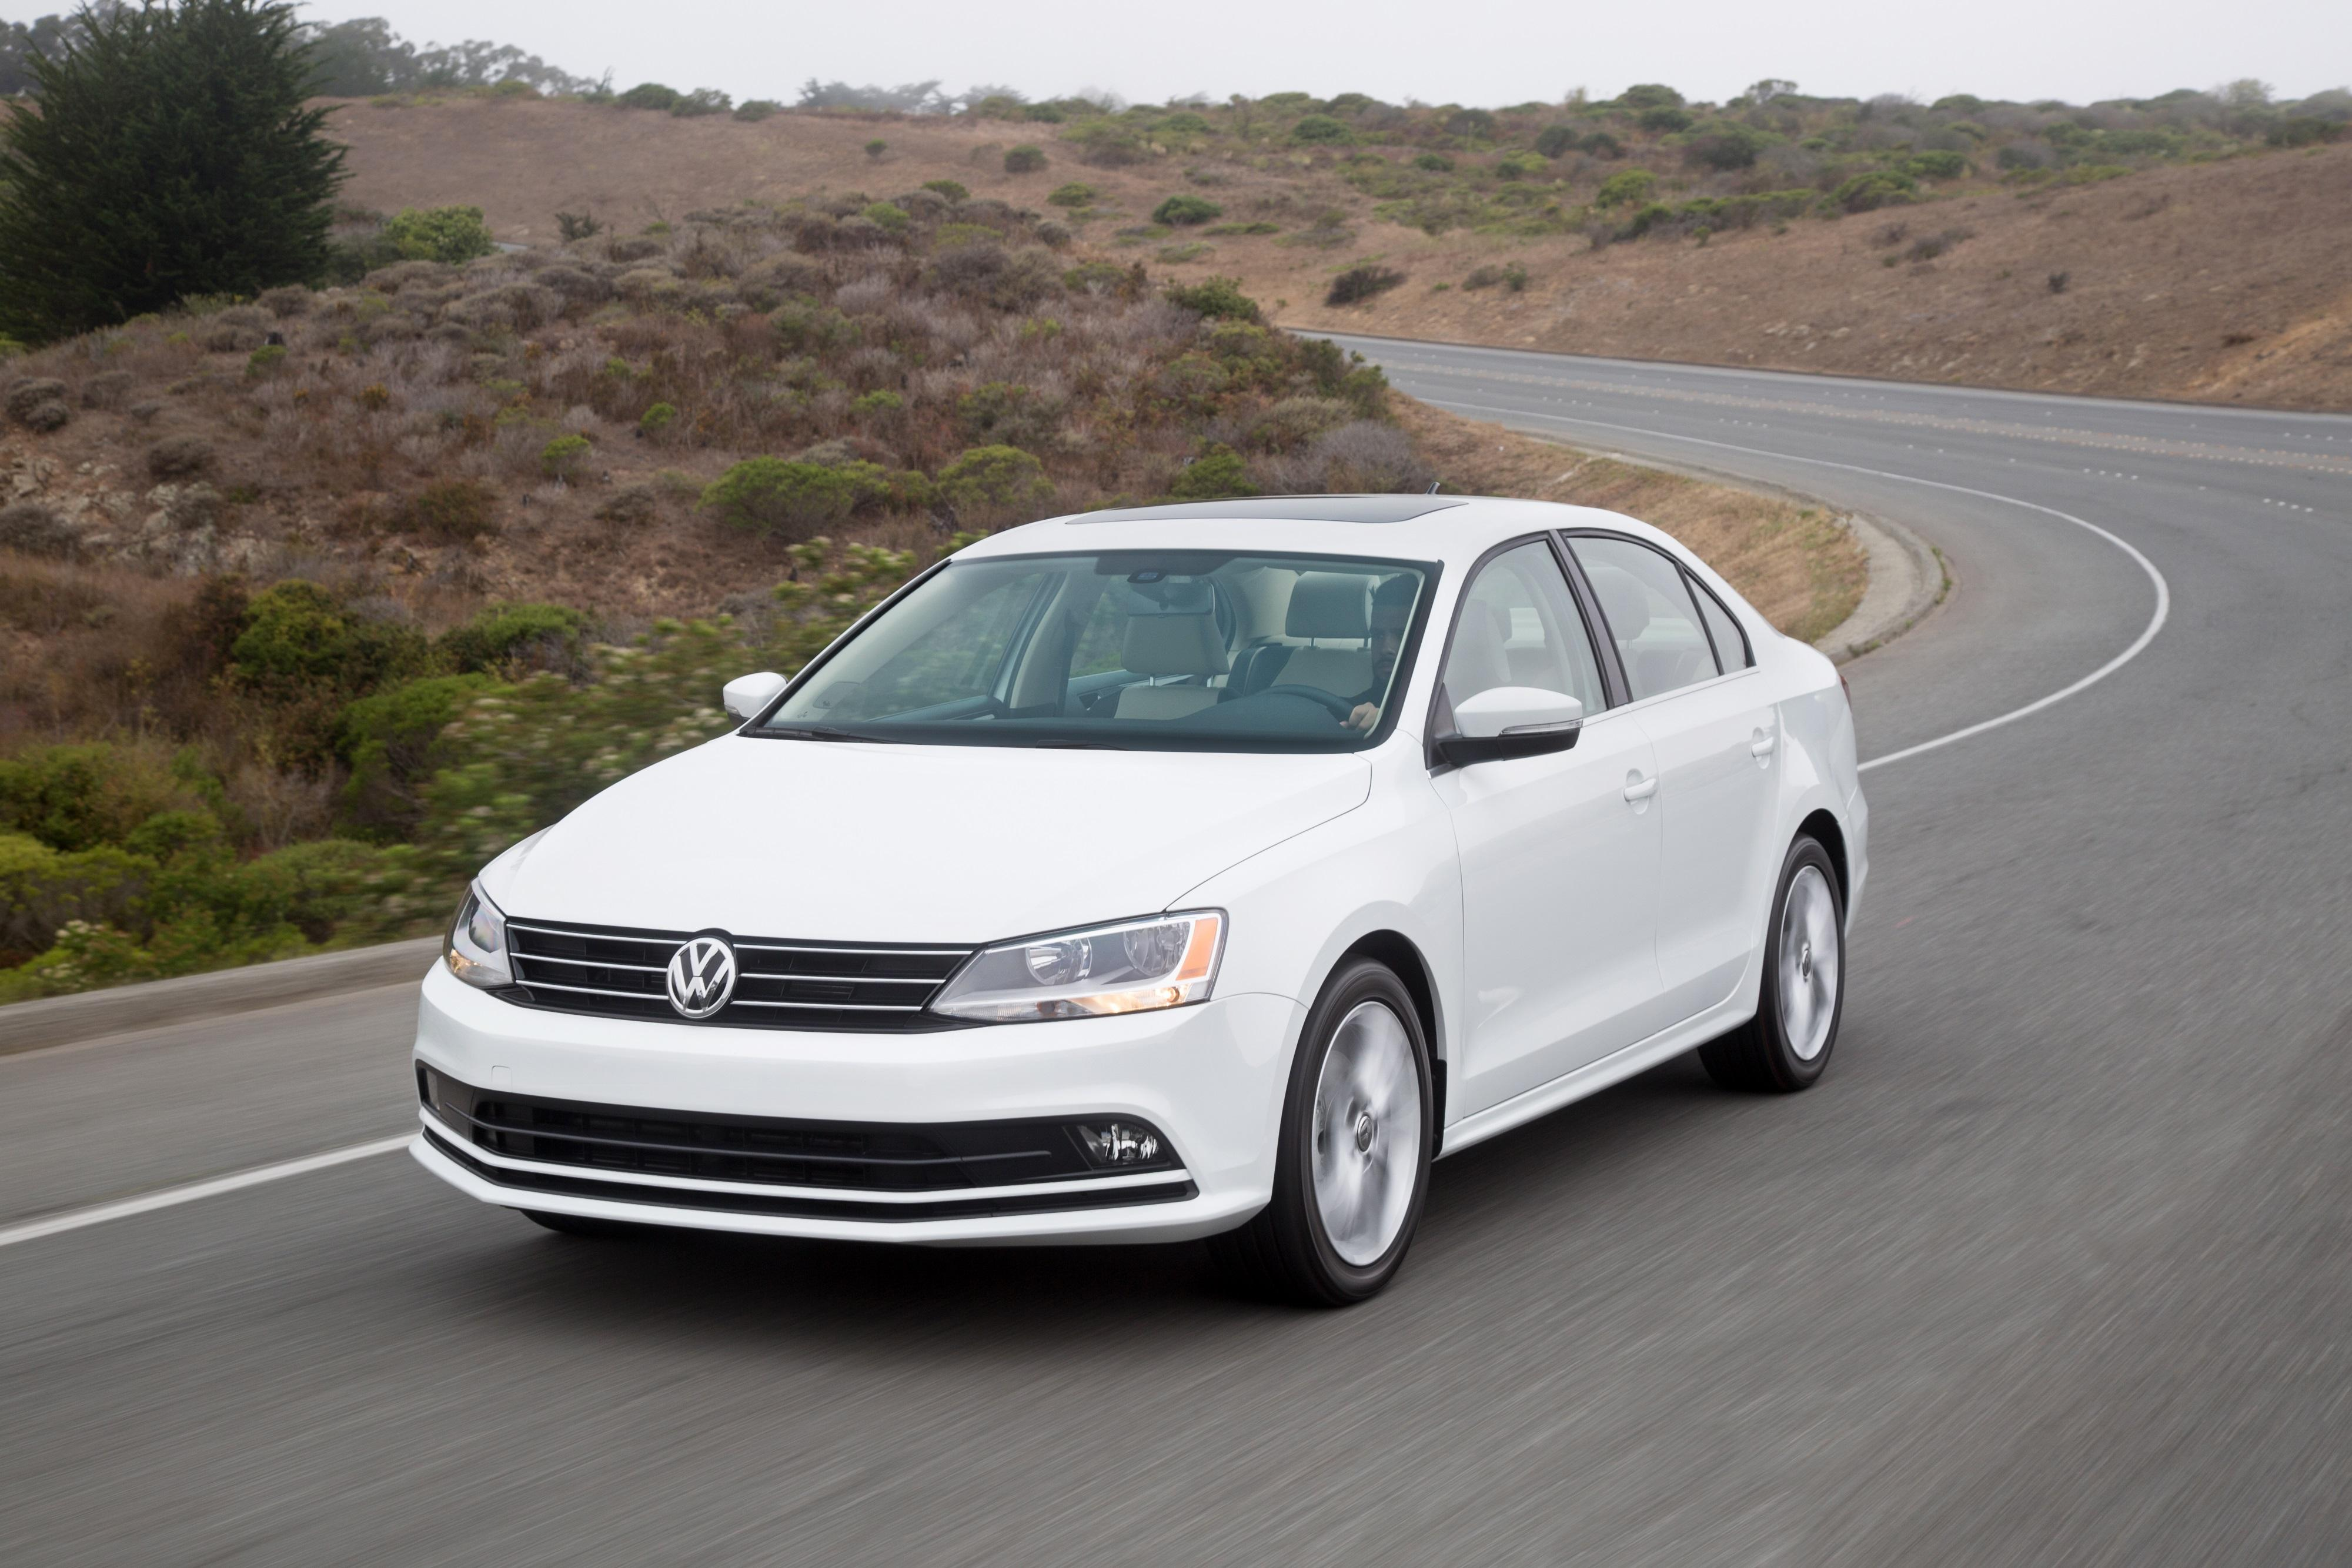 ar quest s look updated vw sedan gets platform of win u to debut volkswagen year shoppers et new pm article in adds jetta